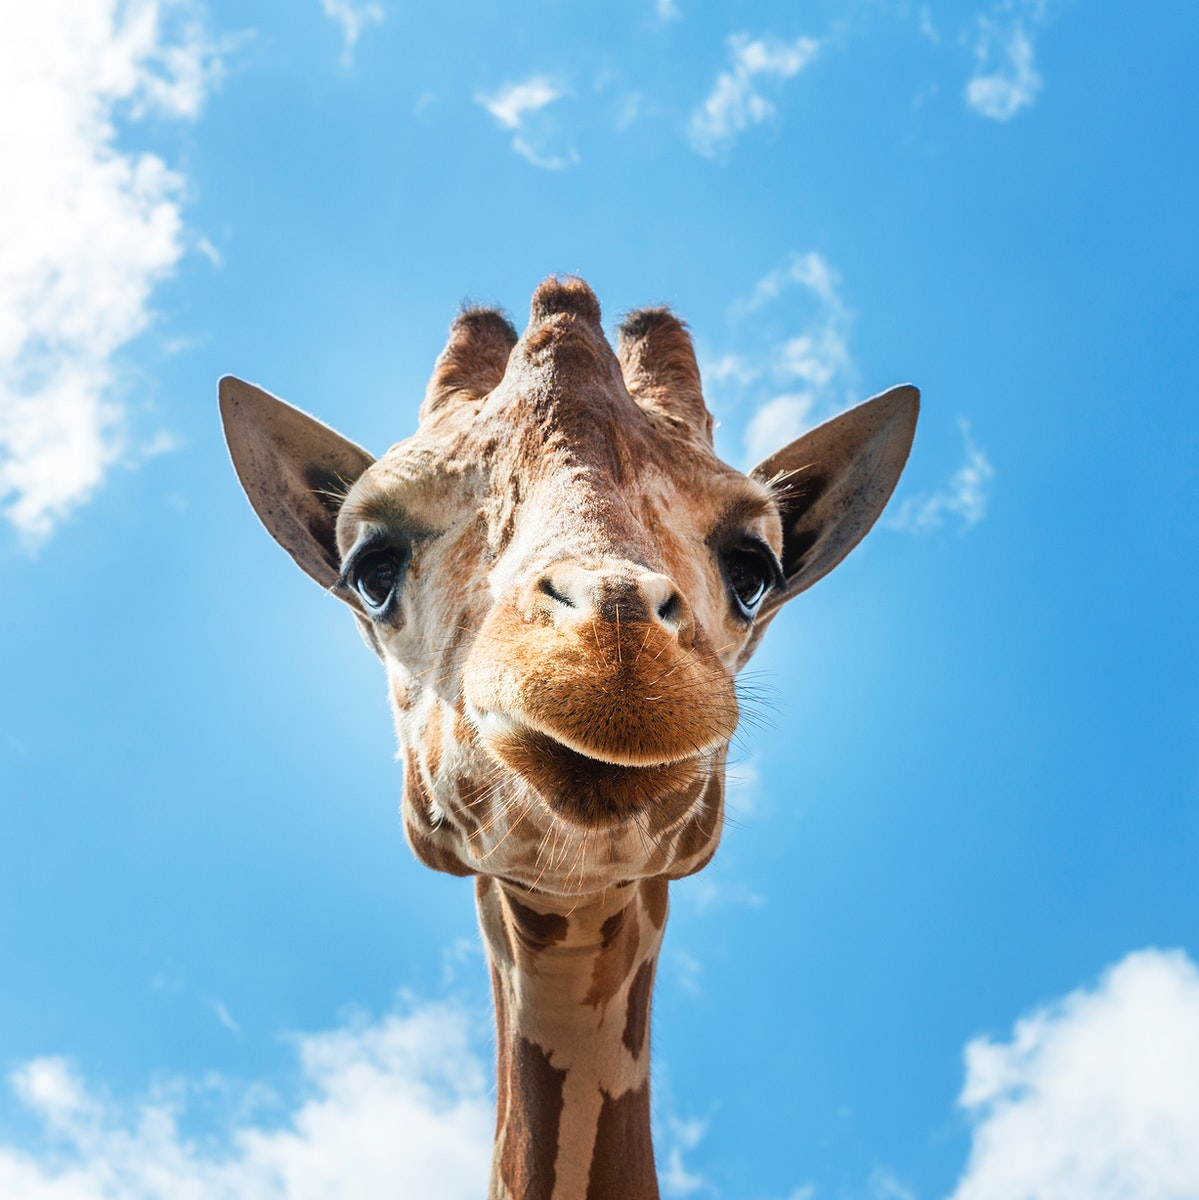 An up-close look at a giraffe at the Gladys Porter Zoo in Brownsville, Texas. Original image from Carol M. Highsmith's…